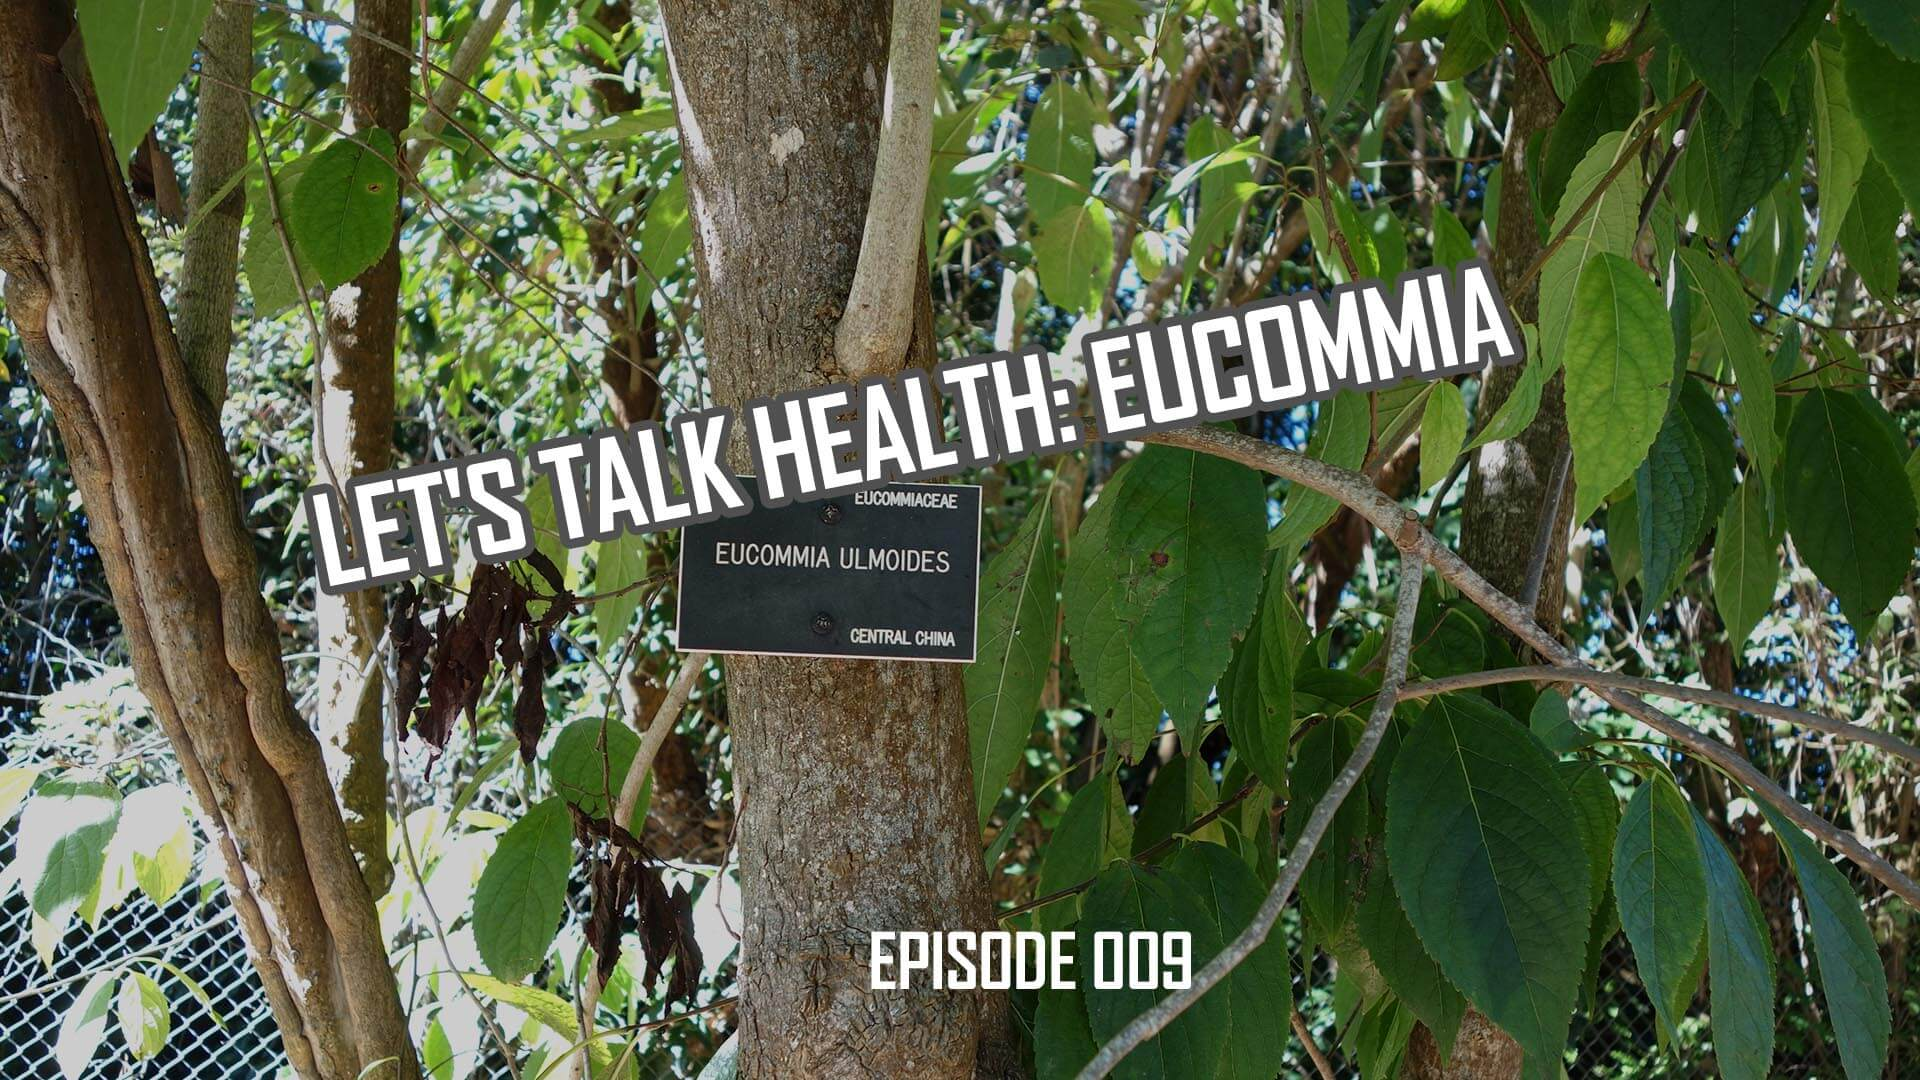 Let's Talk Health: Eucommia Plant History and Health Effects (009)